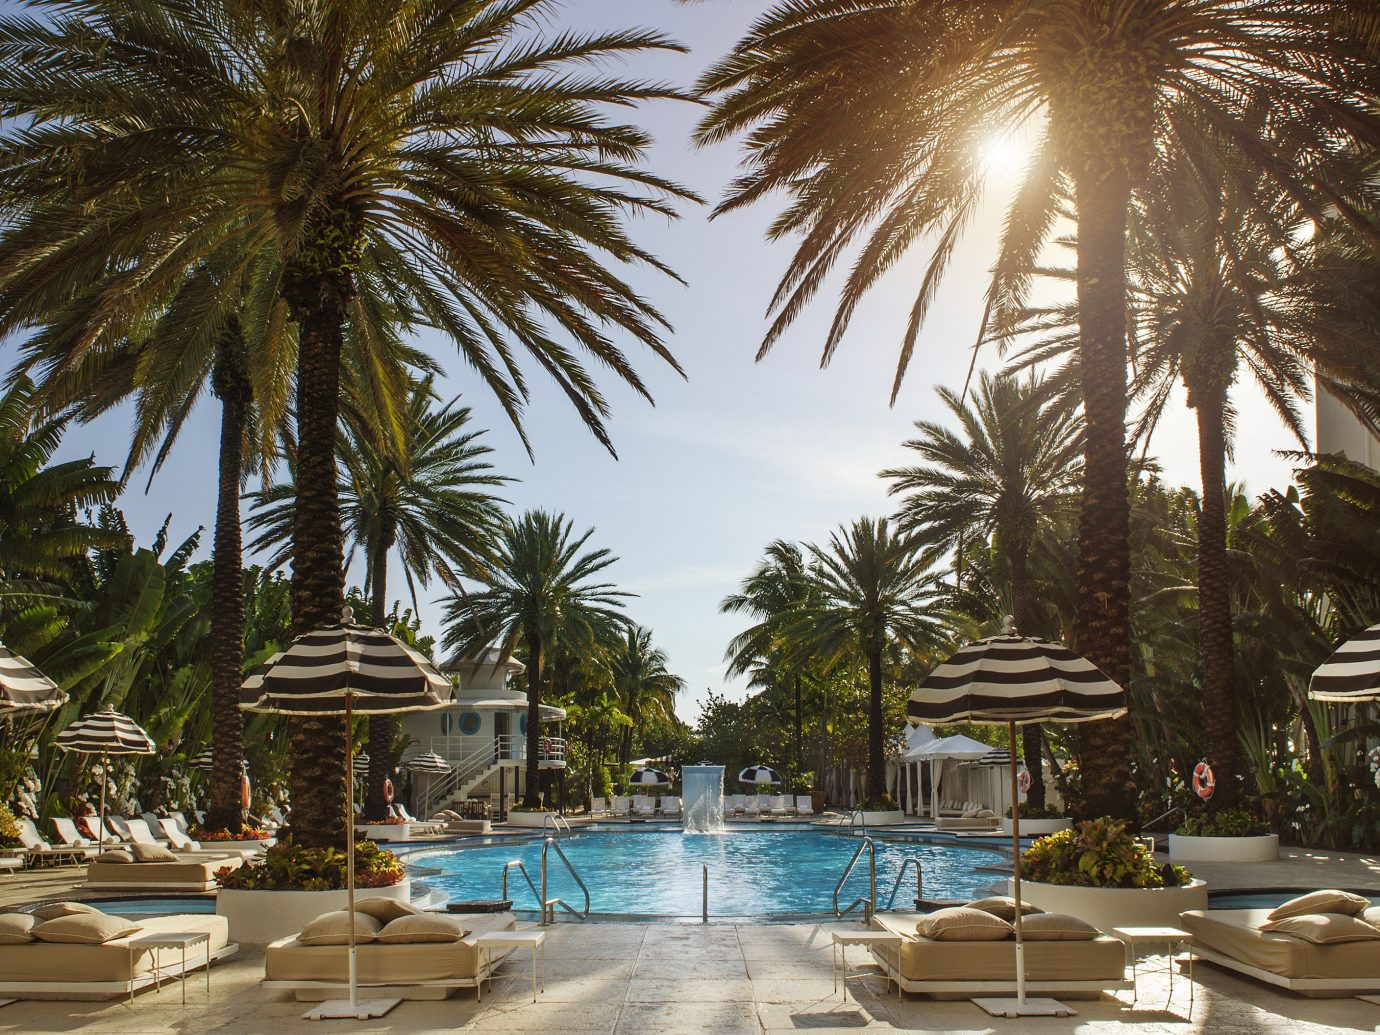 Hotels tree outdoor palm Resort chair swimming pool vacation lined palm family arecales plant estate area furniture several shade